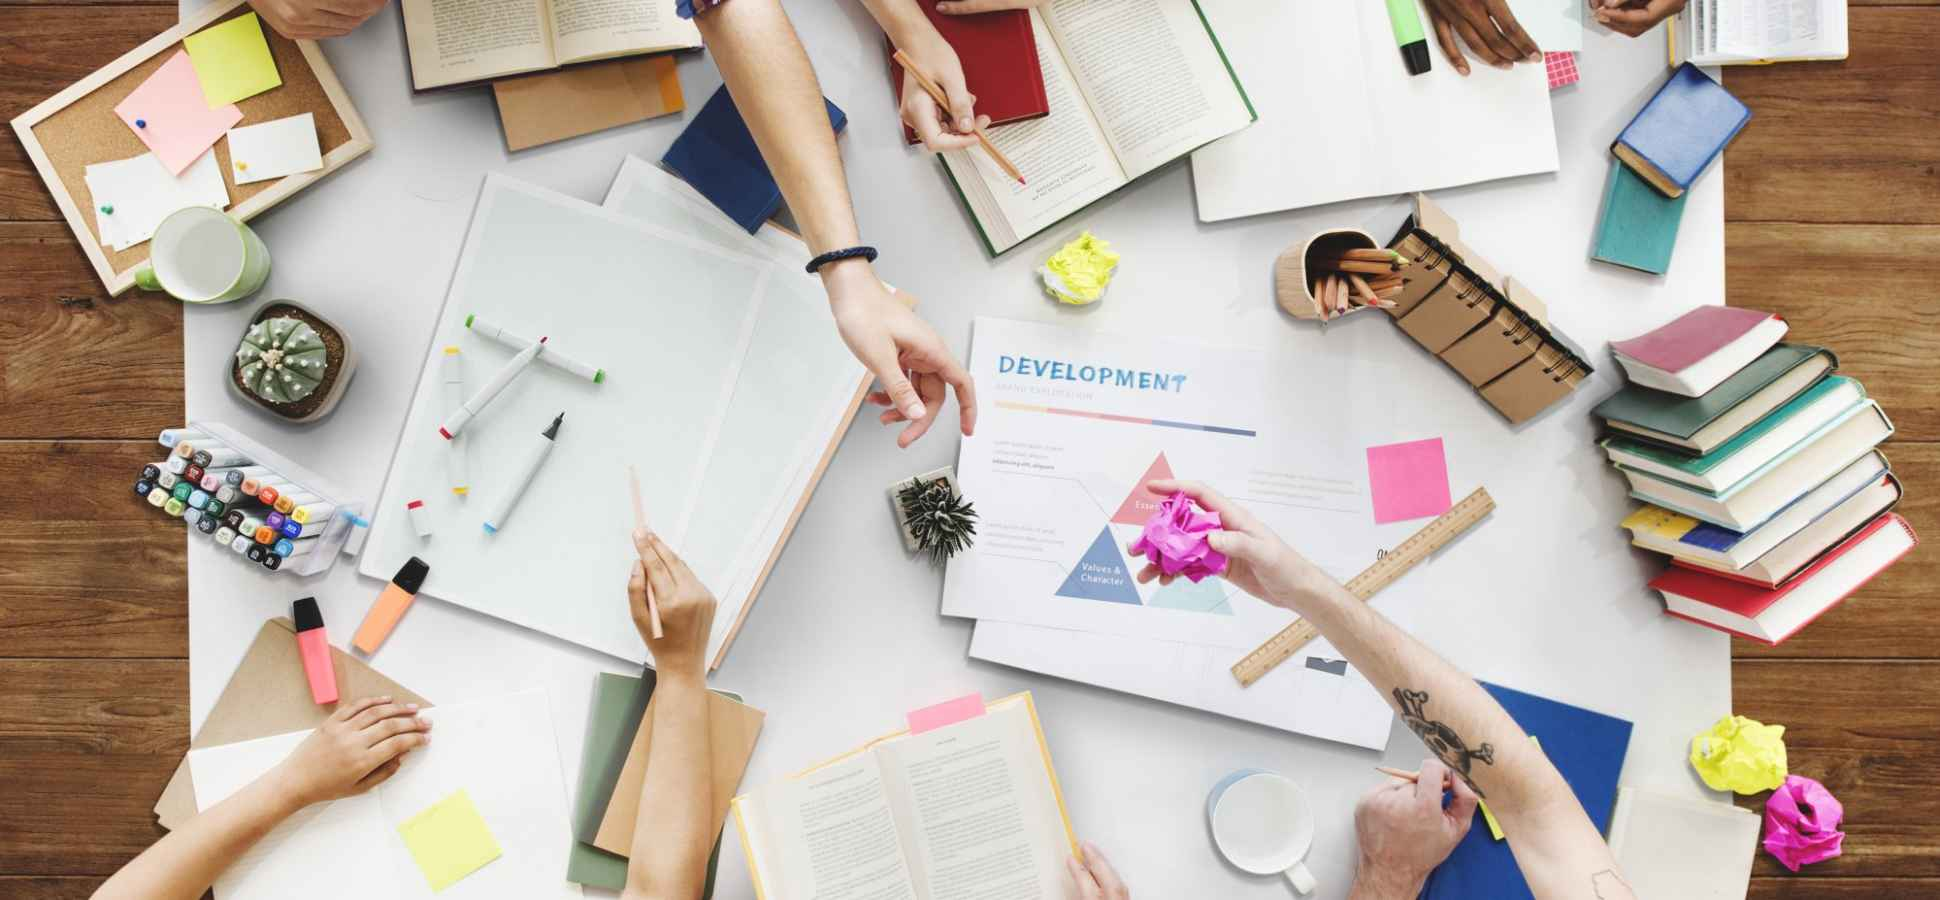 Why Startup Leaders Need to Use 'Third Space Thinking'